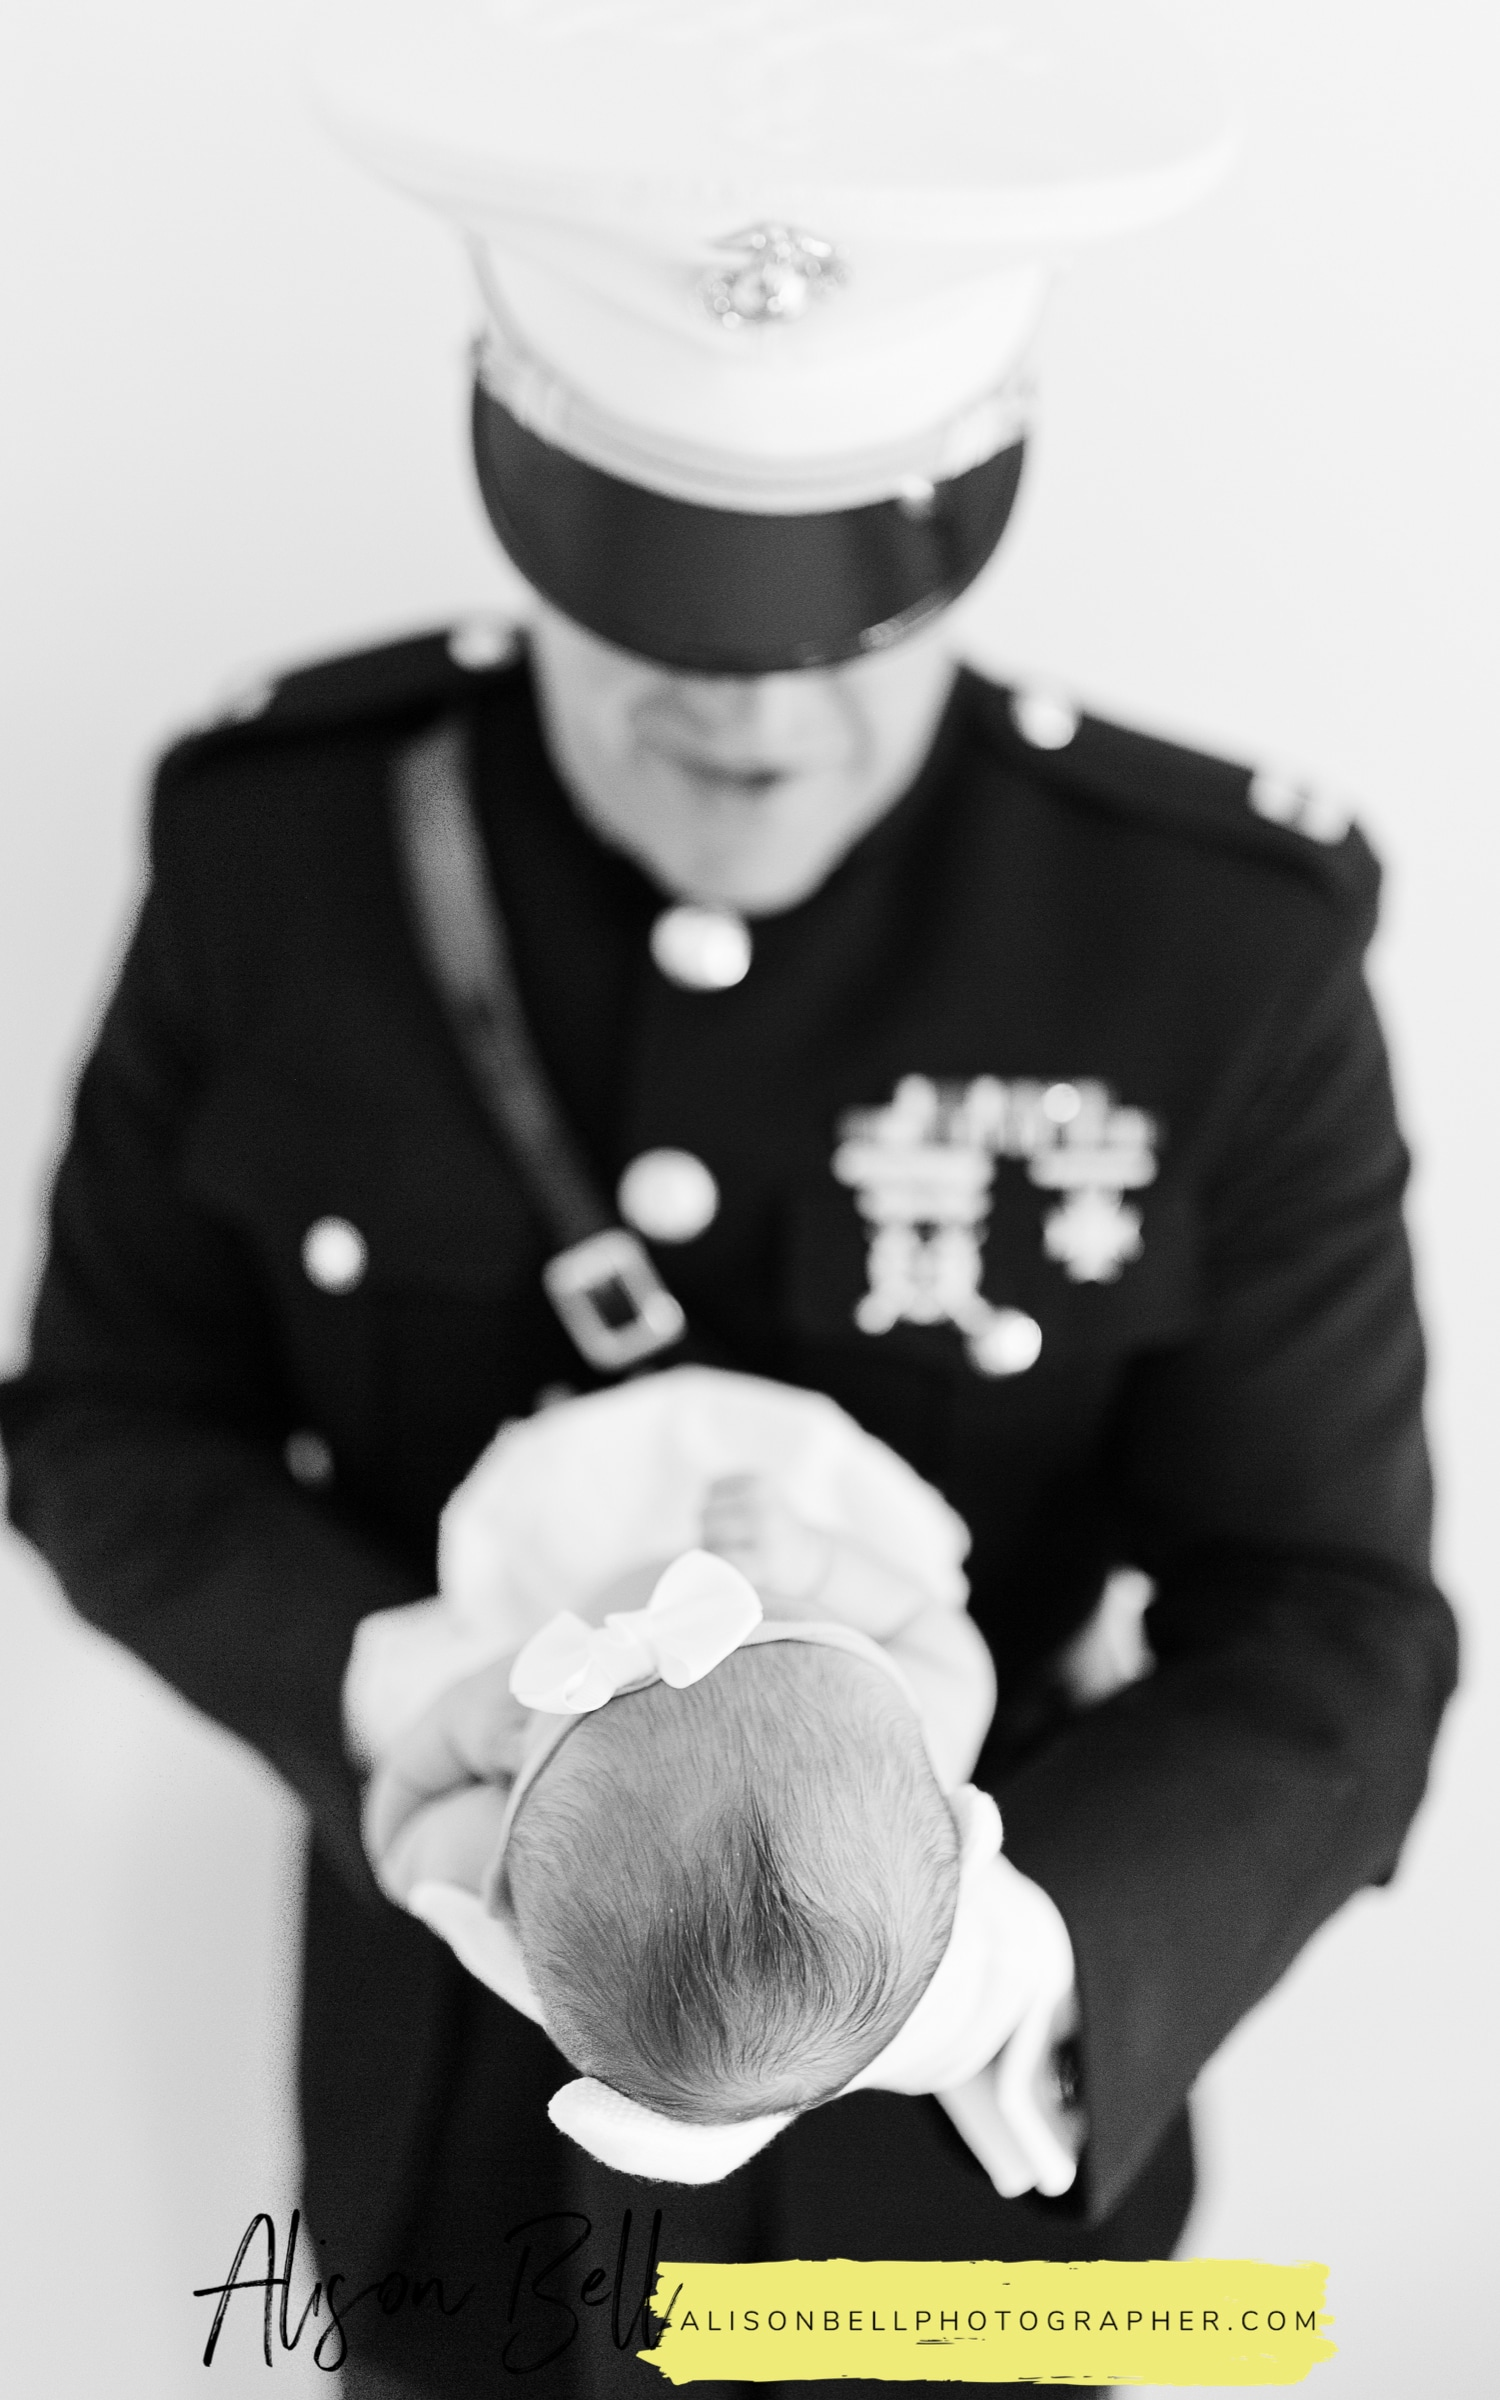 Lifestyle newborn photography in home with USMC dress blues. Officer Blues by Alison Bell, Photographer alisonbellphotographer.com